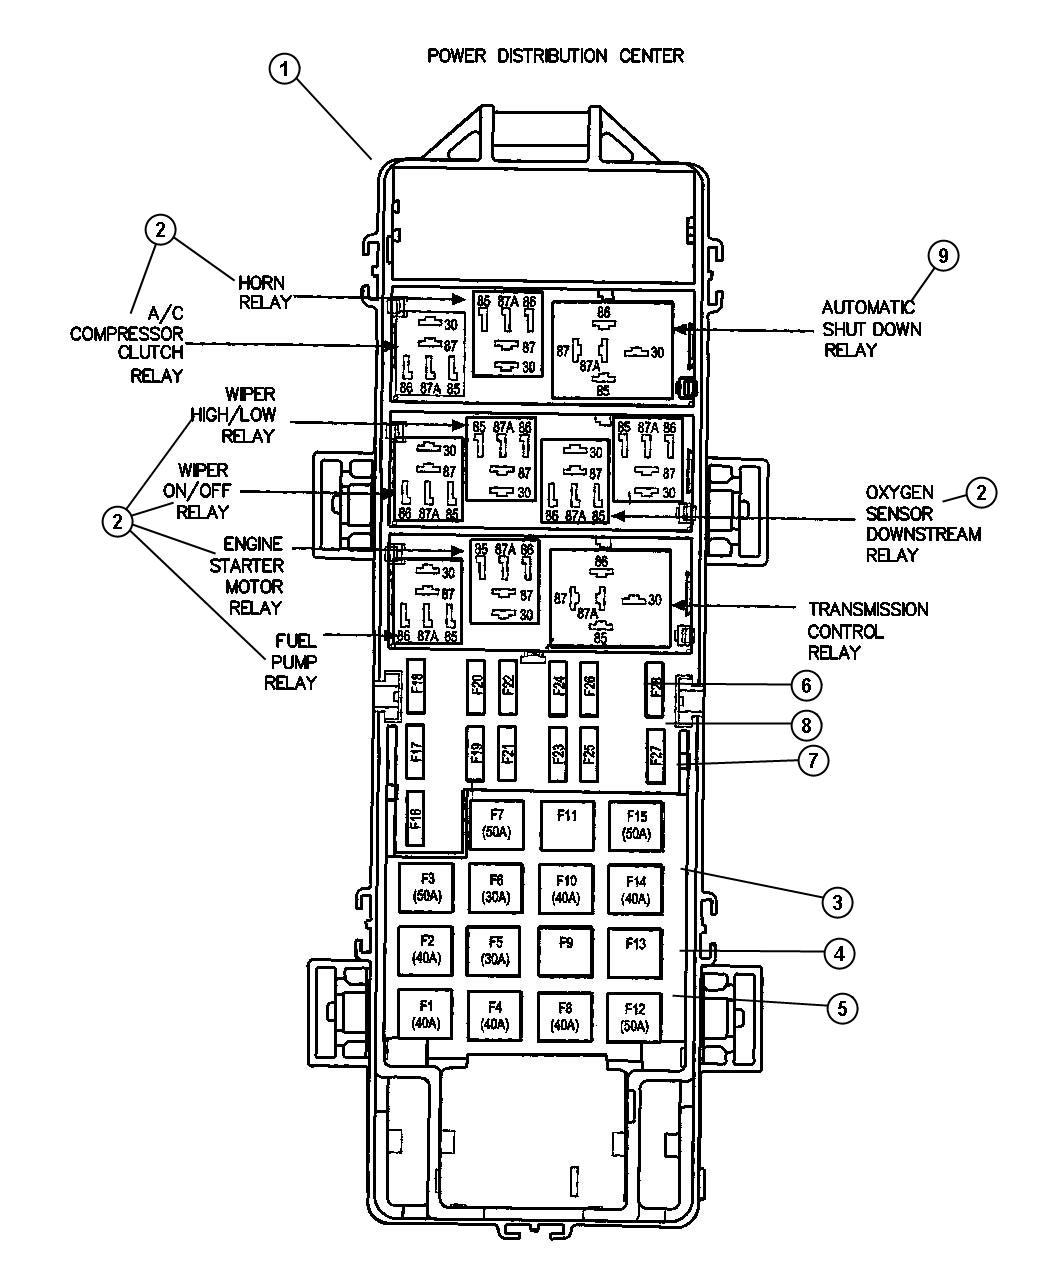 Jeep Starter Relay Wiring Diagram | Wiring Library